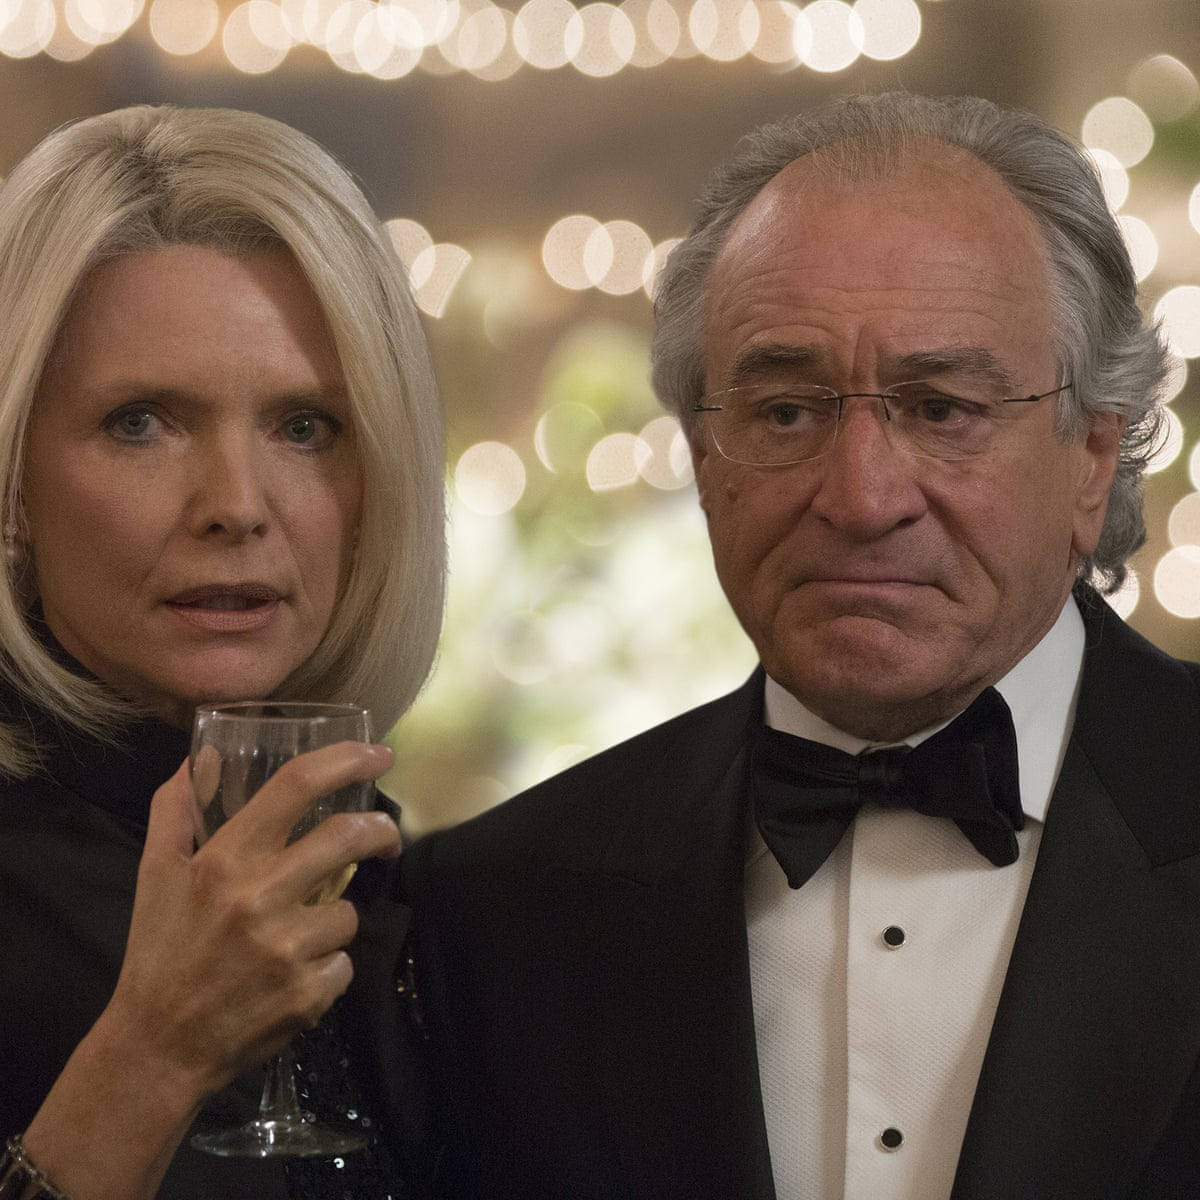 The Wizard Of Lies Review Robert De Niro S Bernie Madoff Drama Is A Cheat Robert De Niro The Guardian